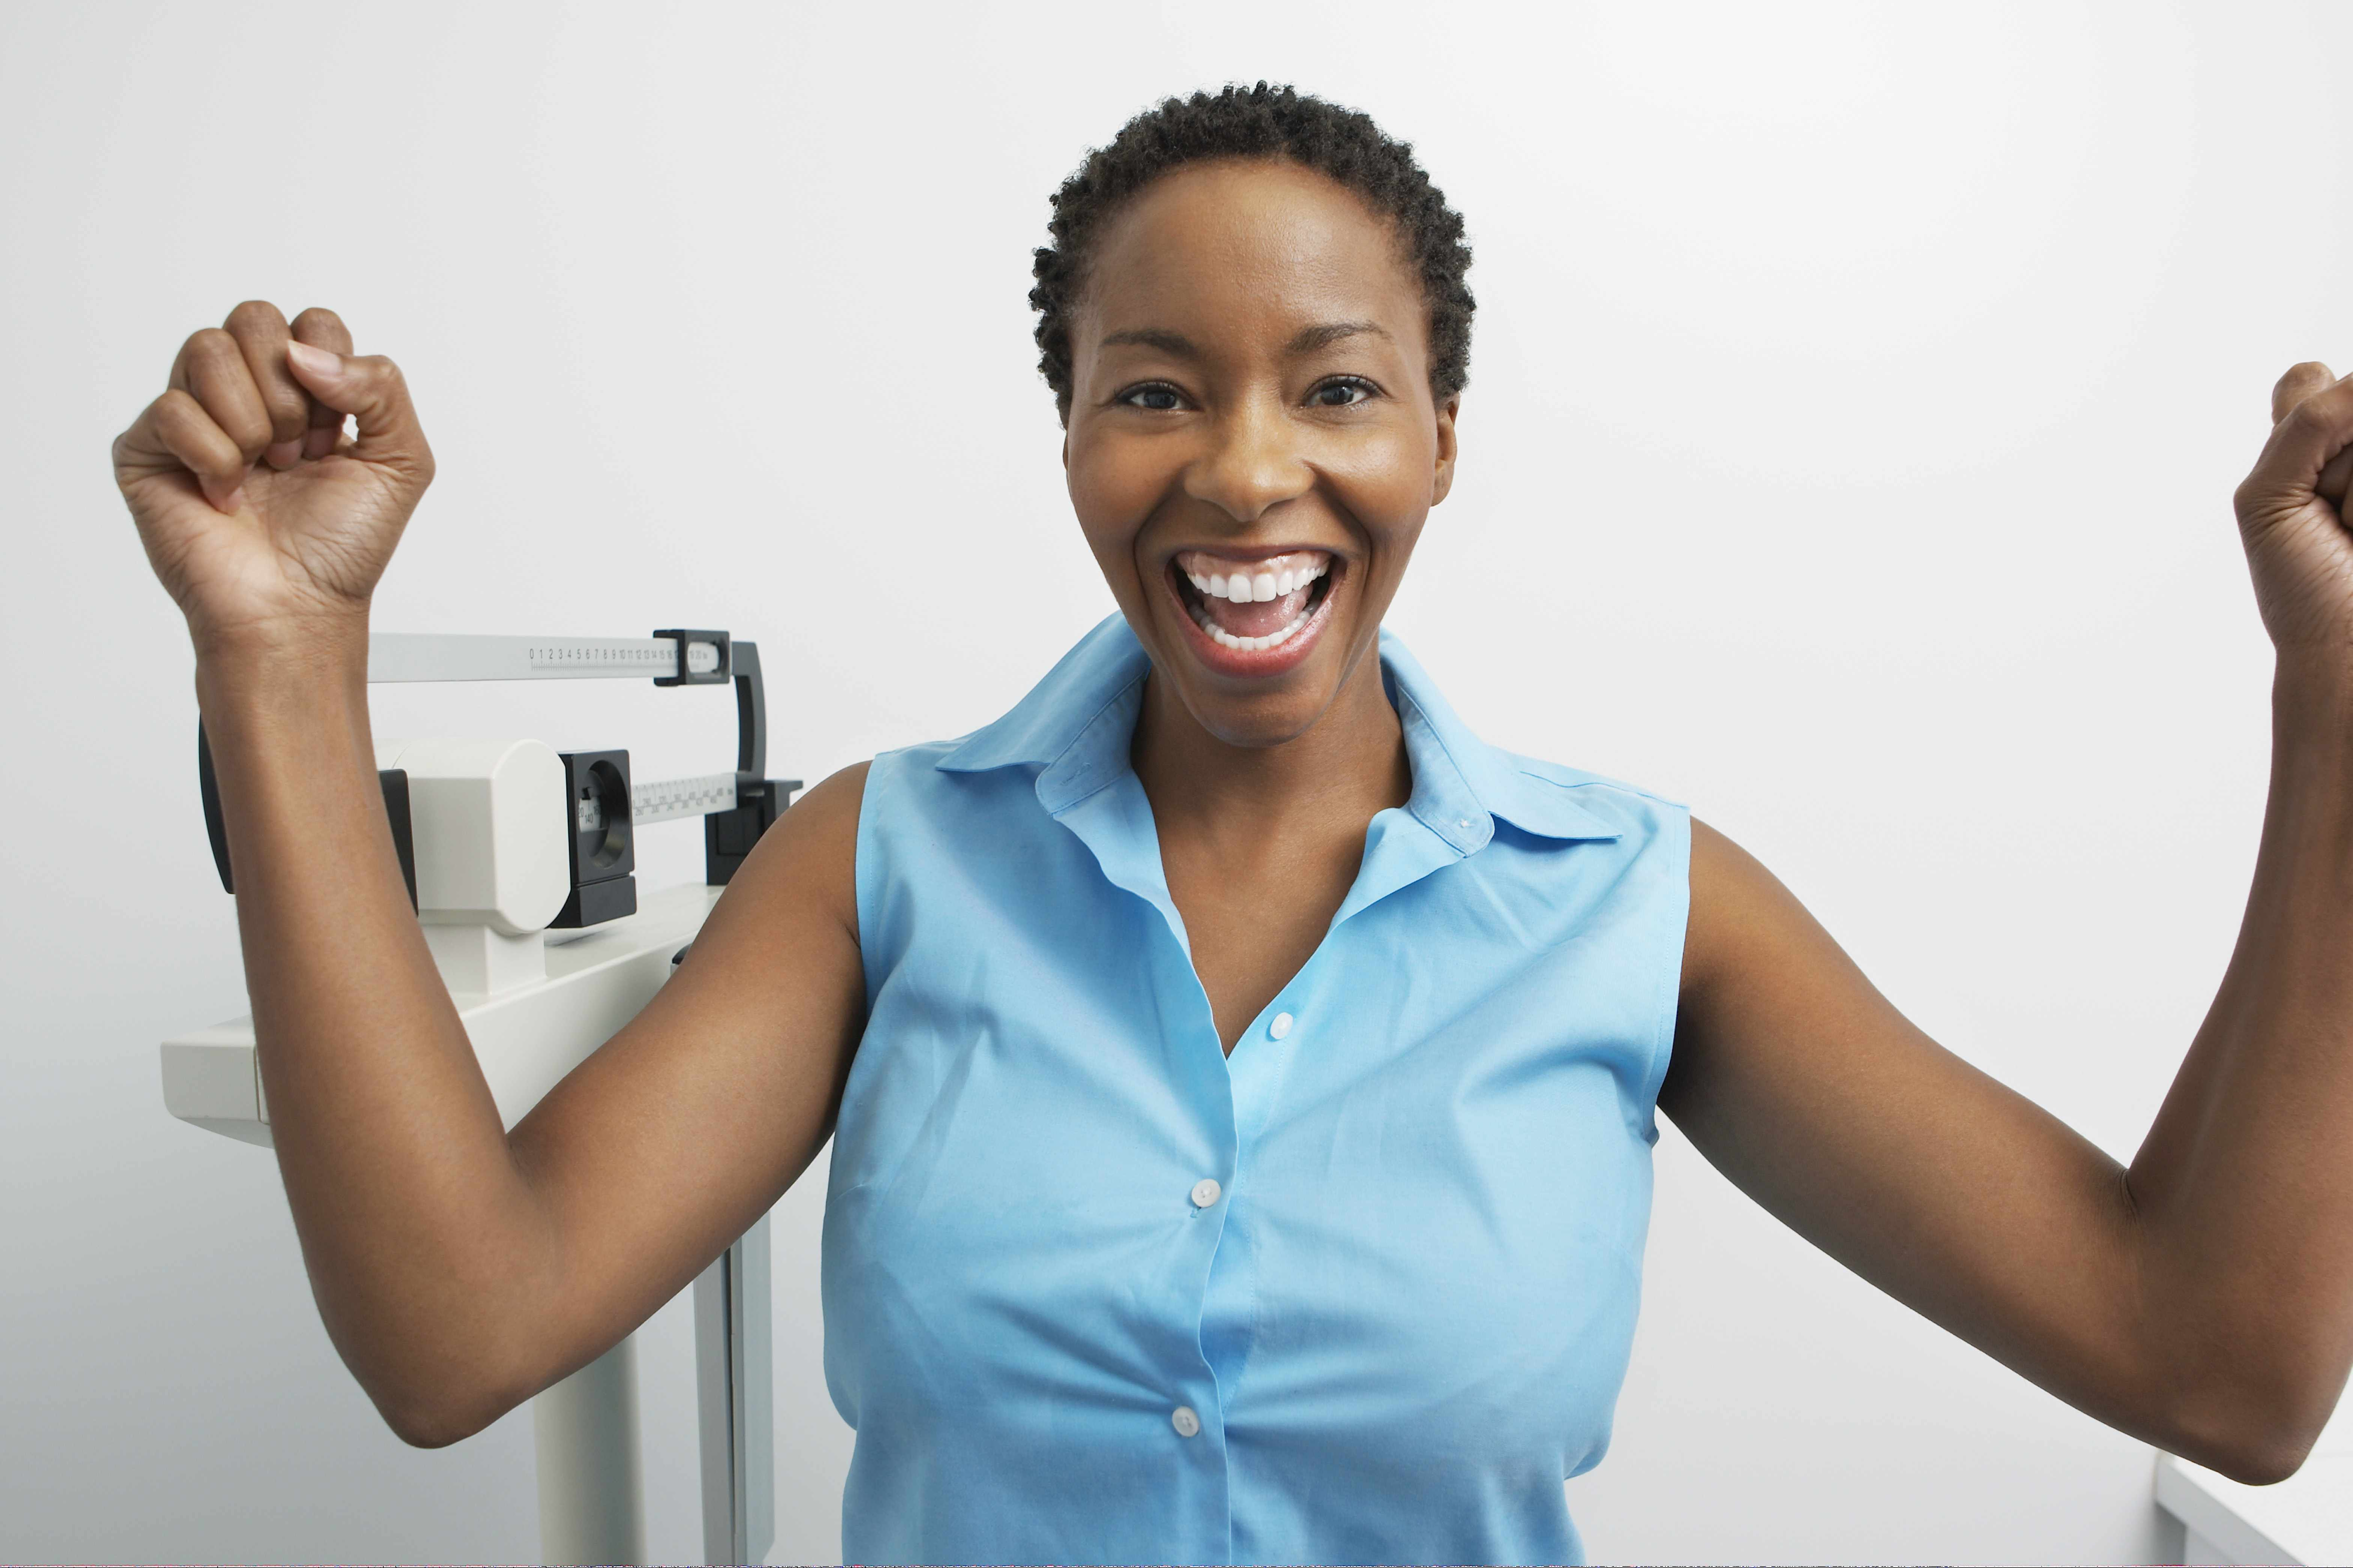 a woman celebrating health and weight loss